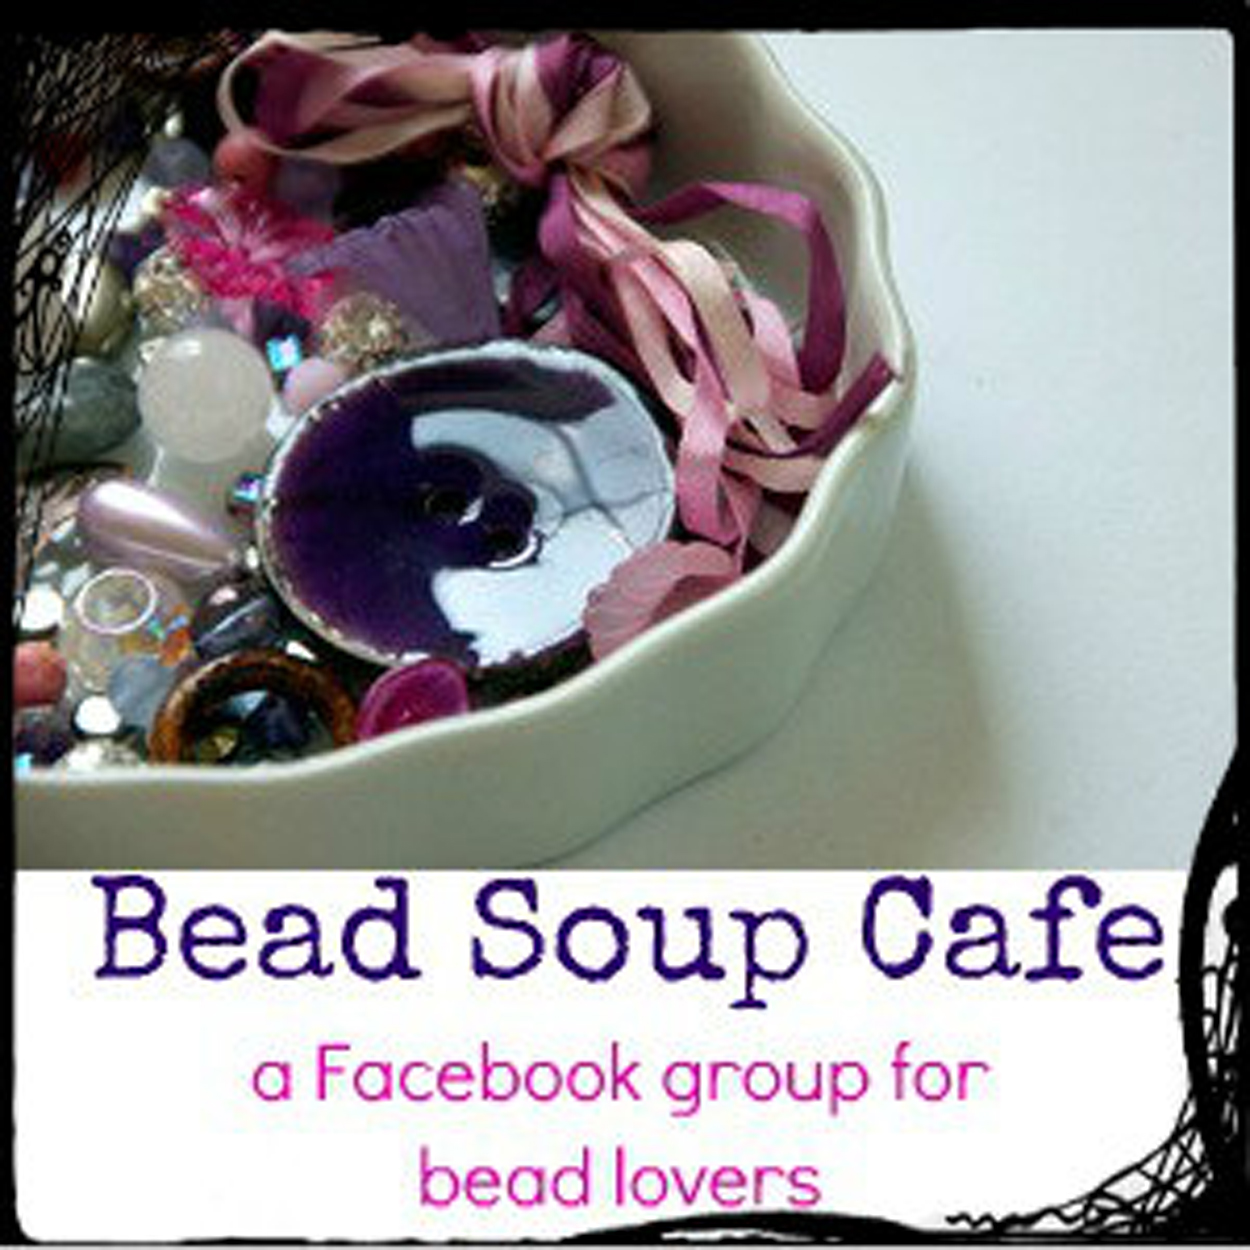 Join the Bead Soup Cafe!